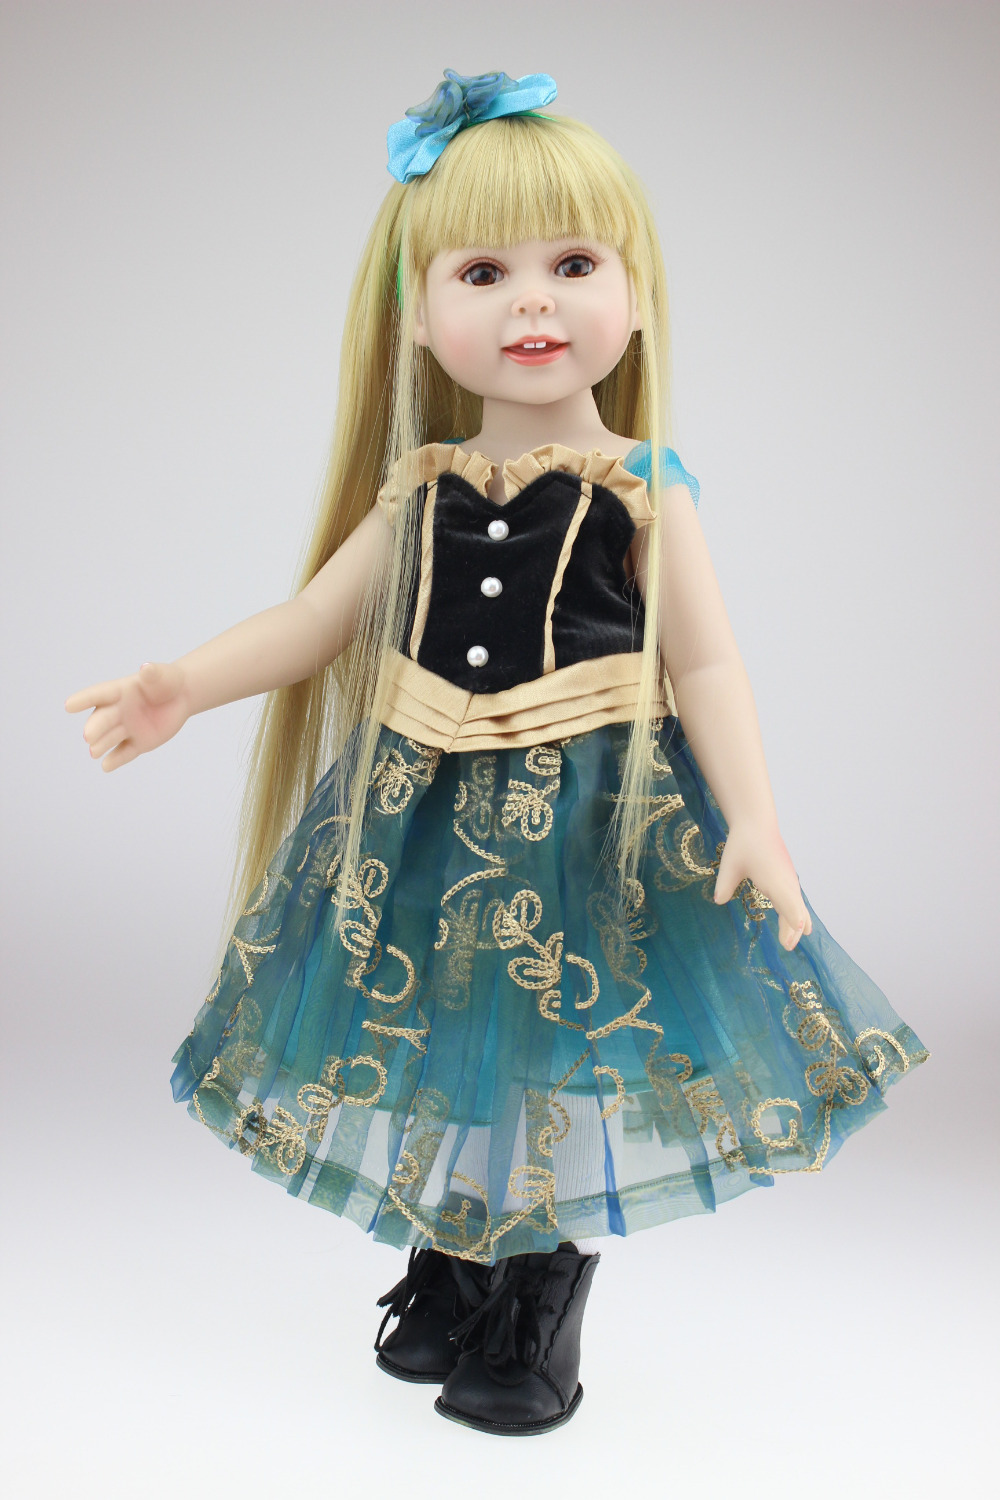 Aliexpress Com Buy Fashion Full Vinyl 18 Inch Girl Doll